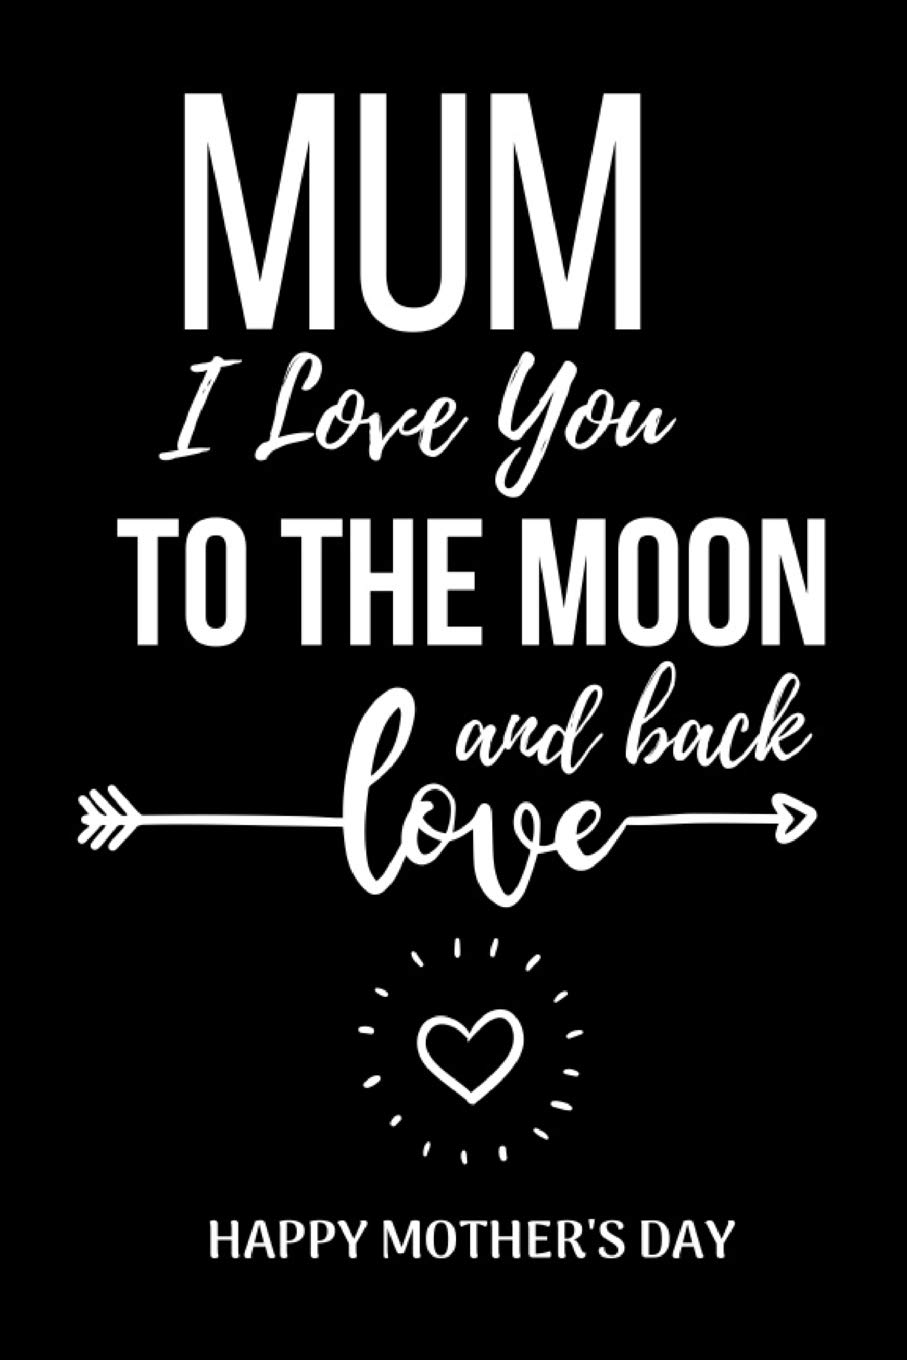 Mum I Love You To The Moon And Back Tee T-Shirt For Mother/'s Day FDG01-1HT-23008